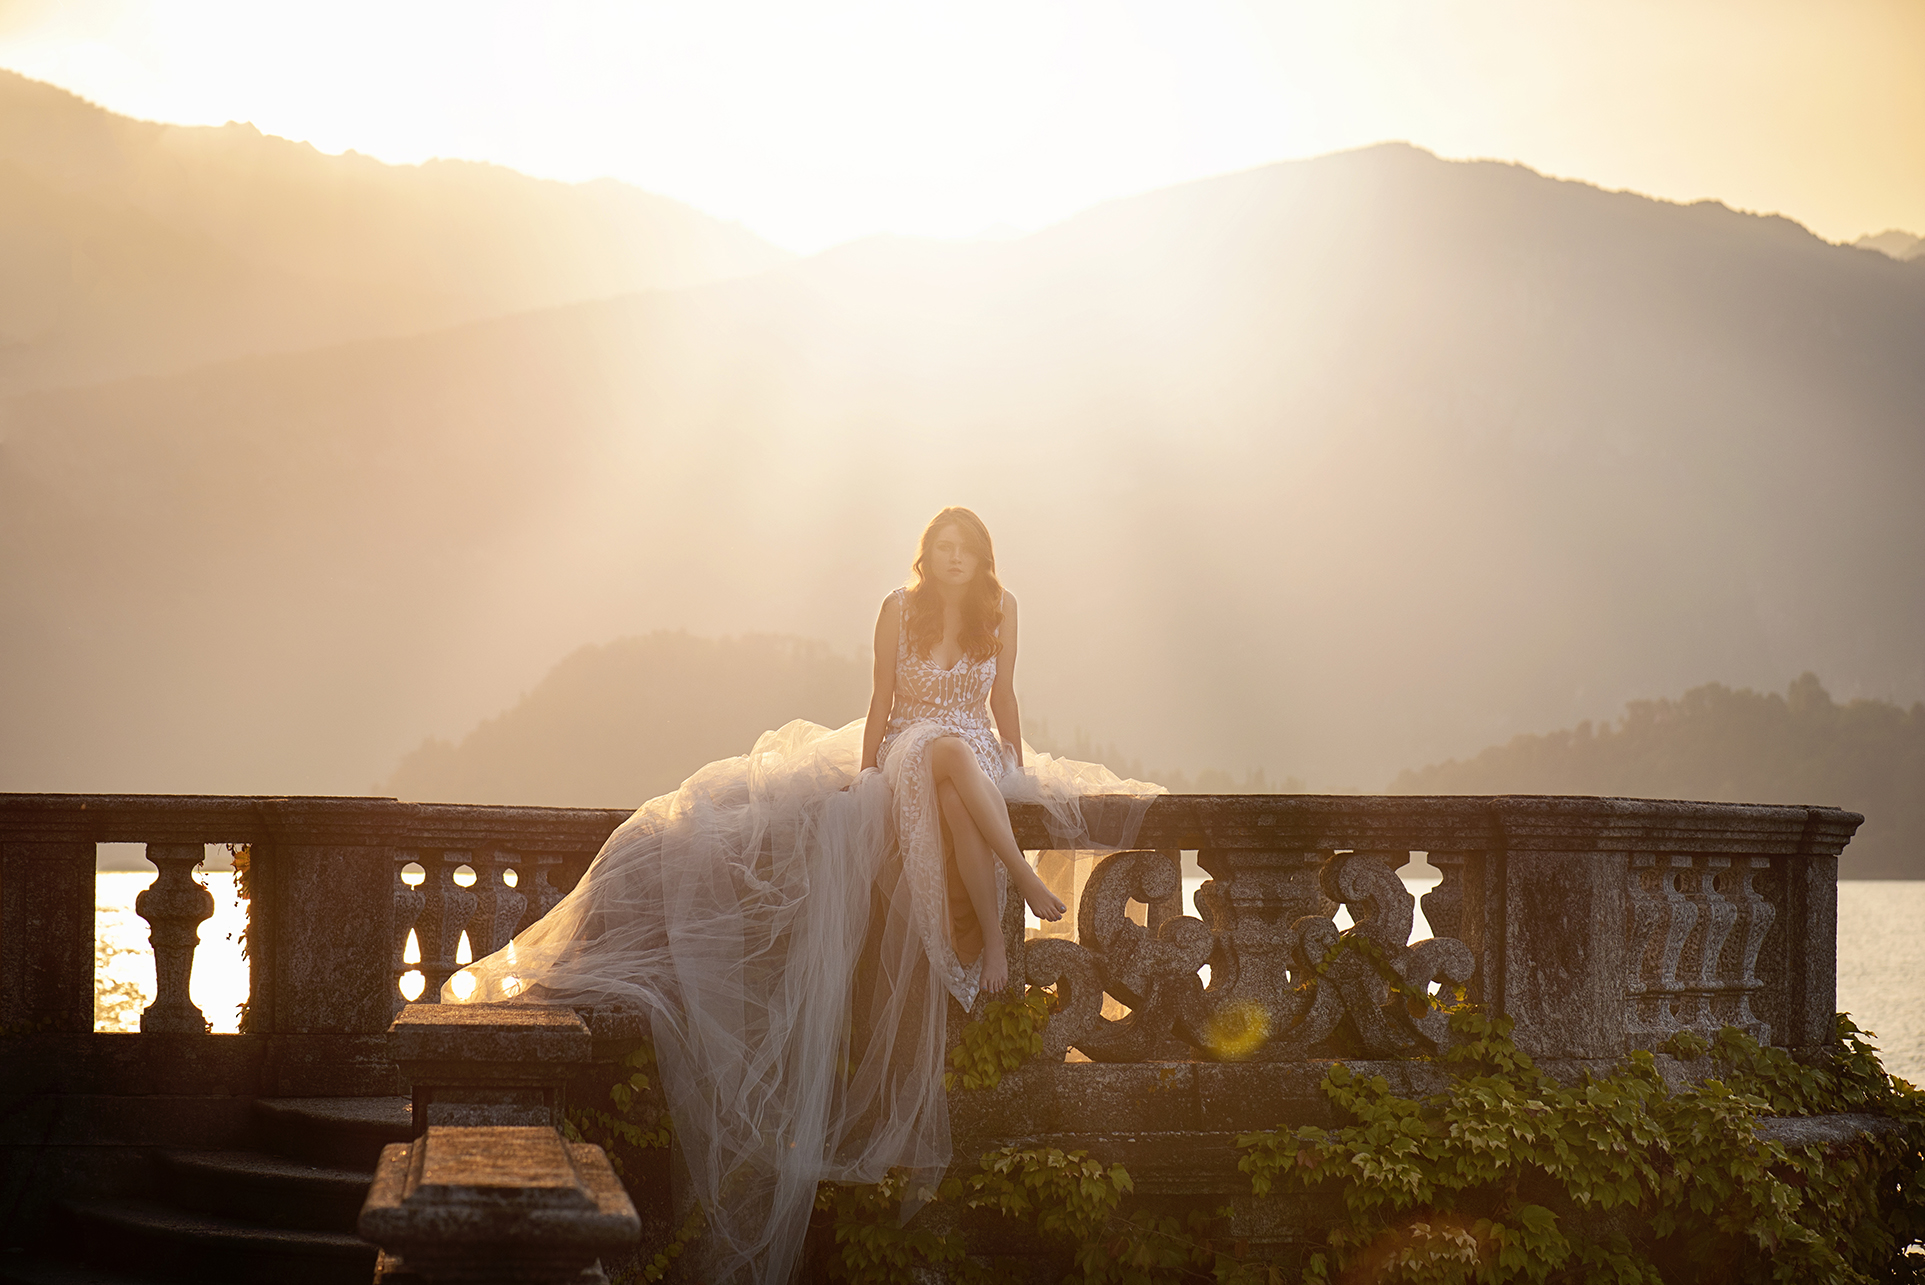 Bride sitting on stone ledge in front of mountains and lake Como in Italy with sunrising behind her